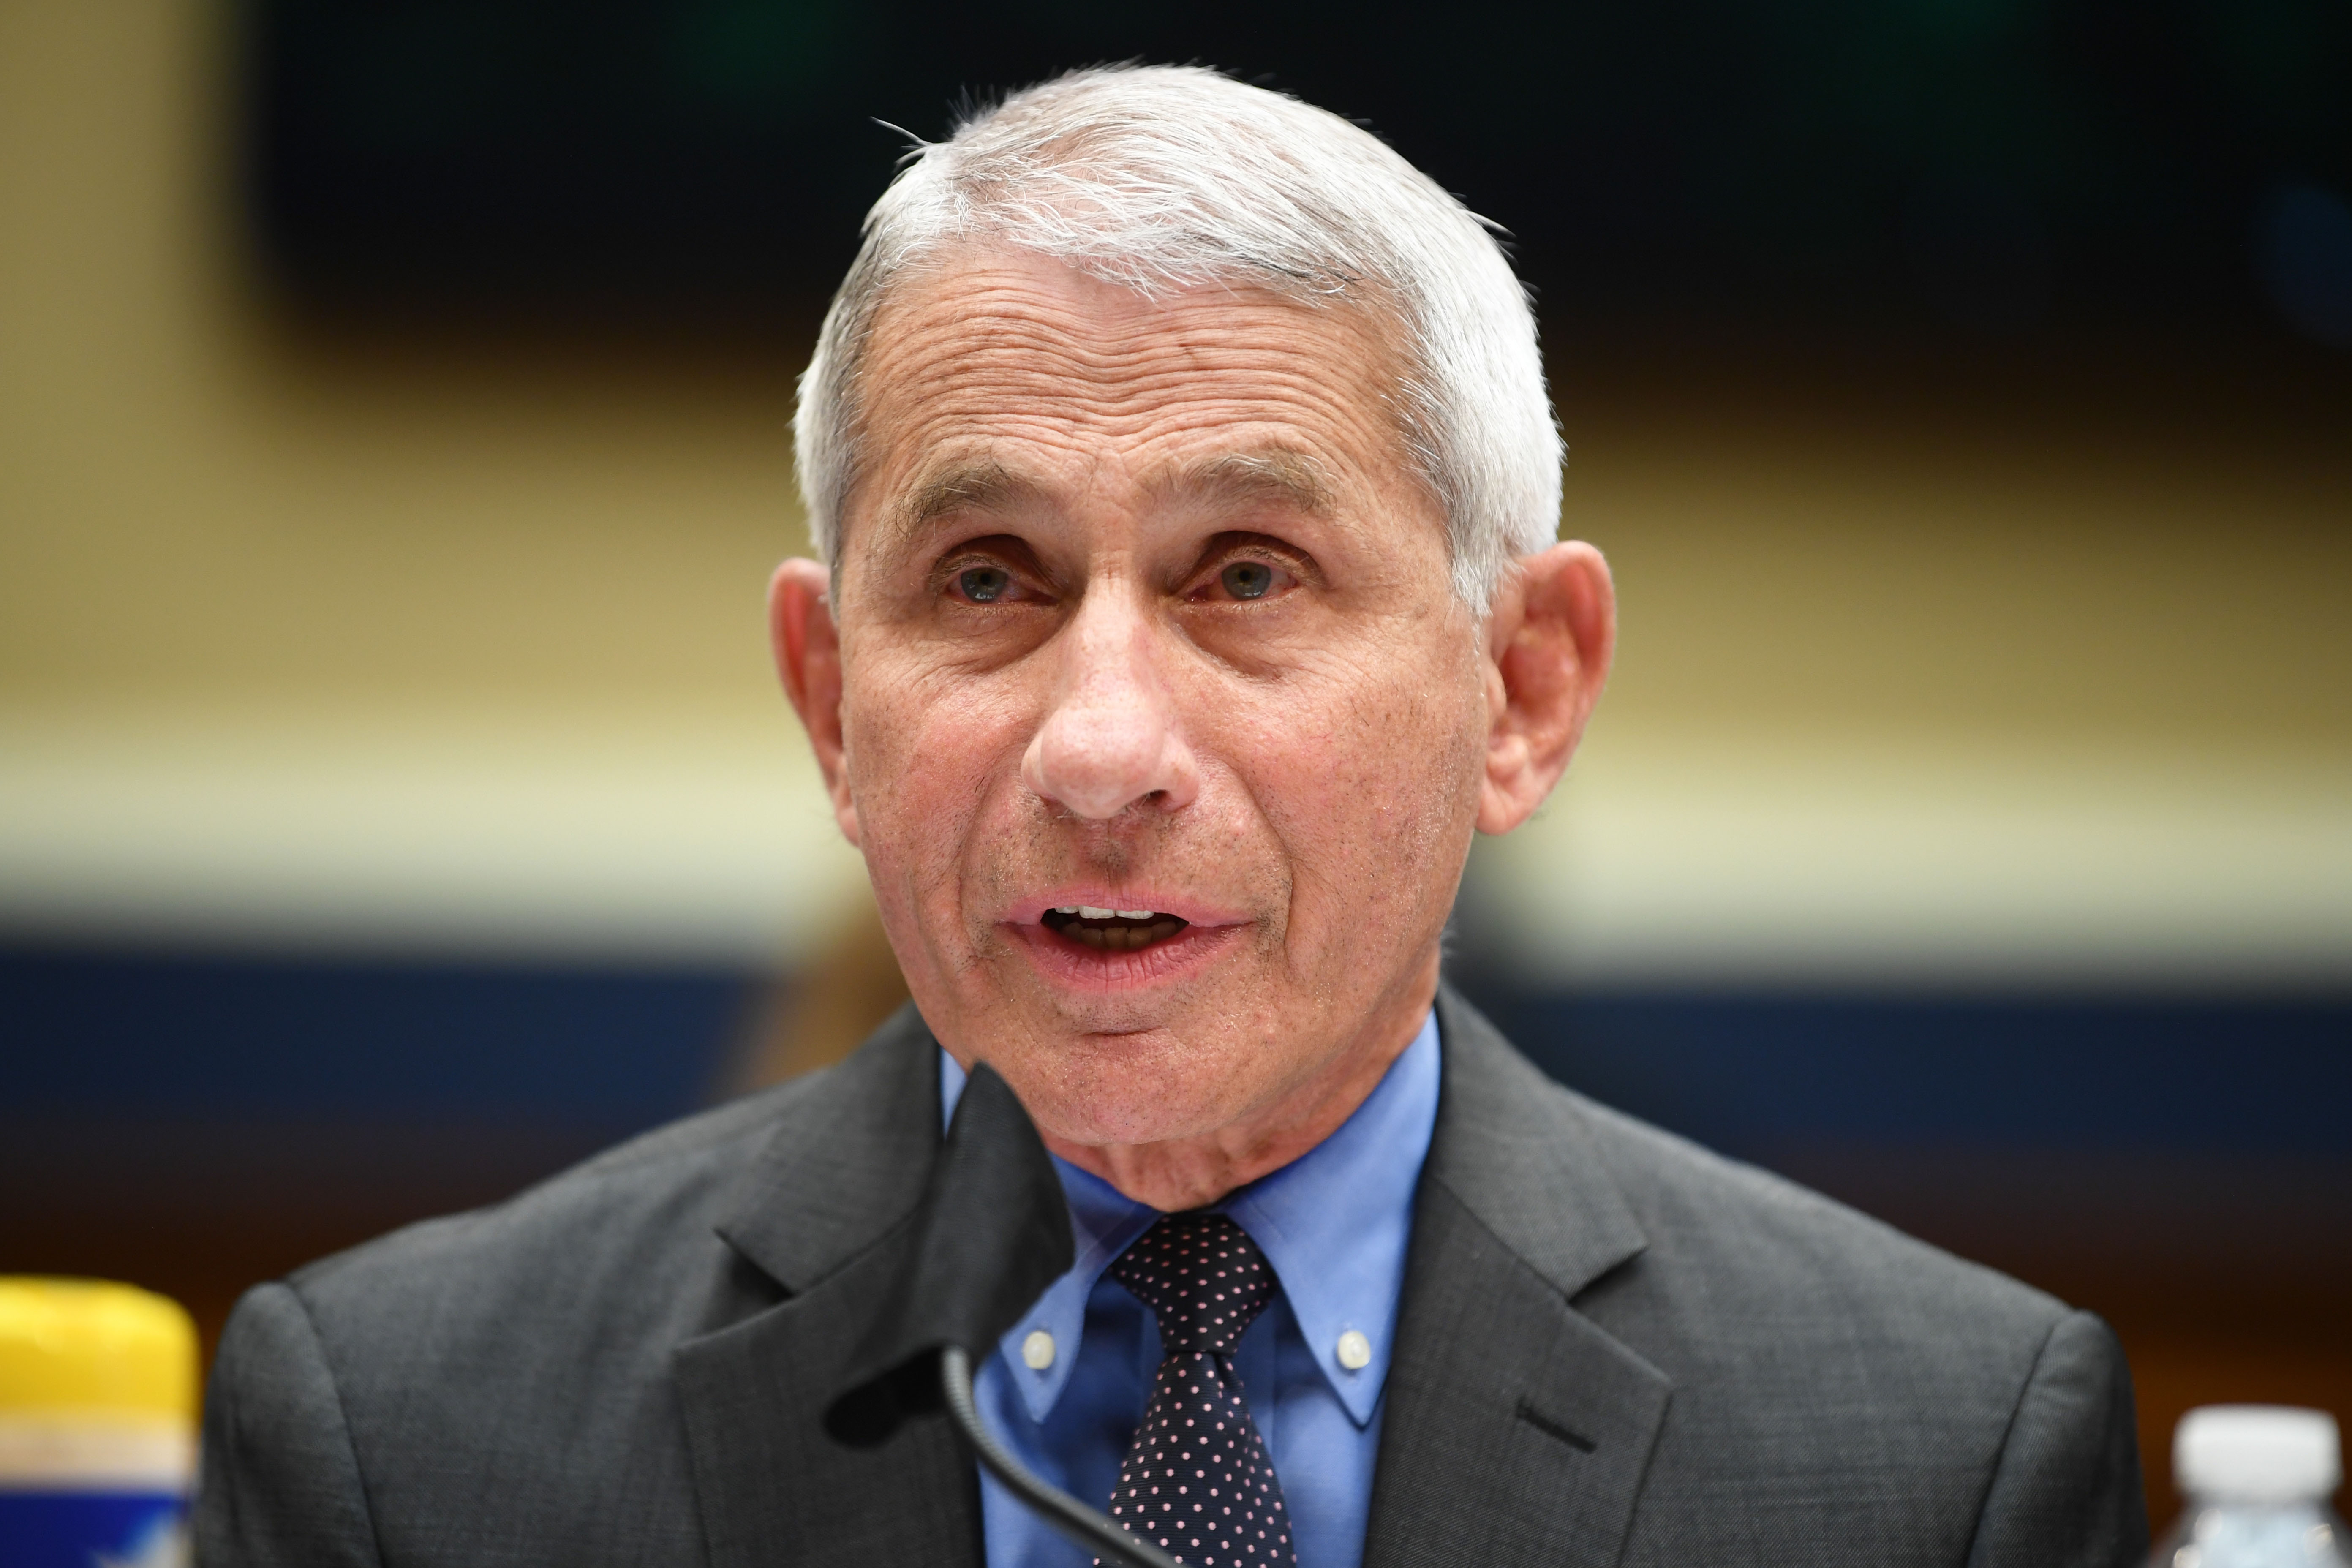 Dr. Anthony Fauci, the United States' top infectious disease expert, testifies at a hearing in Washington, DC, on June 23.